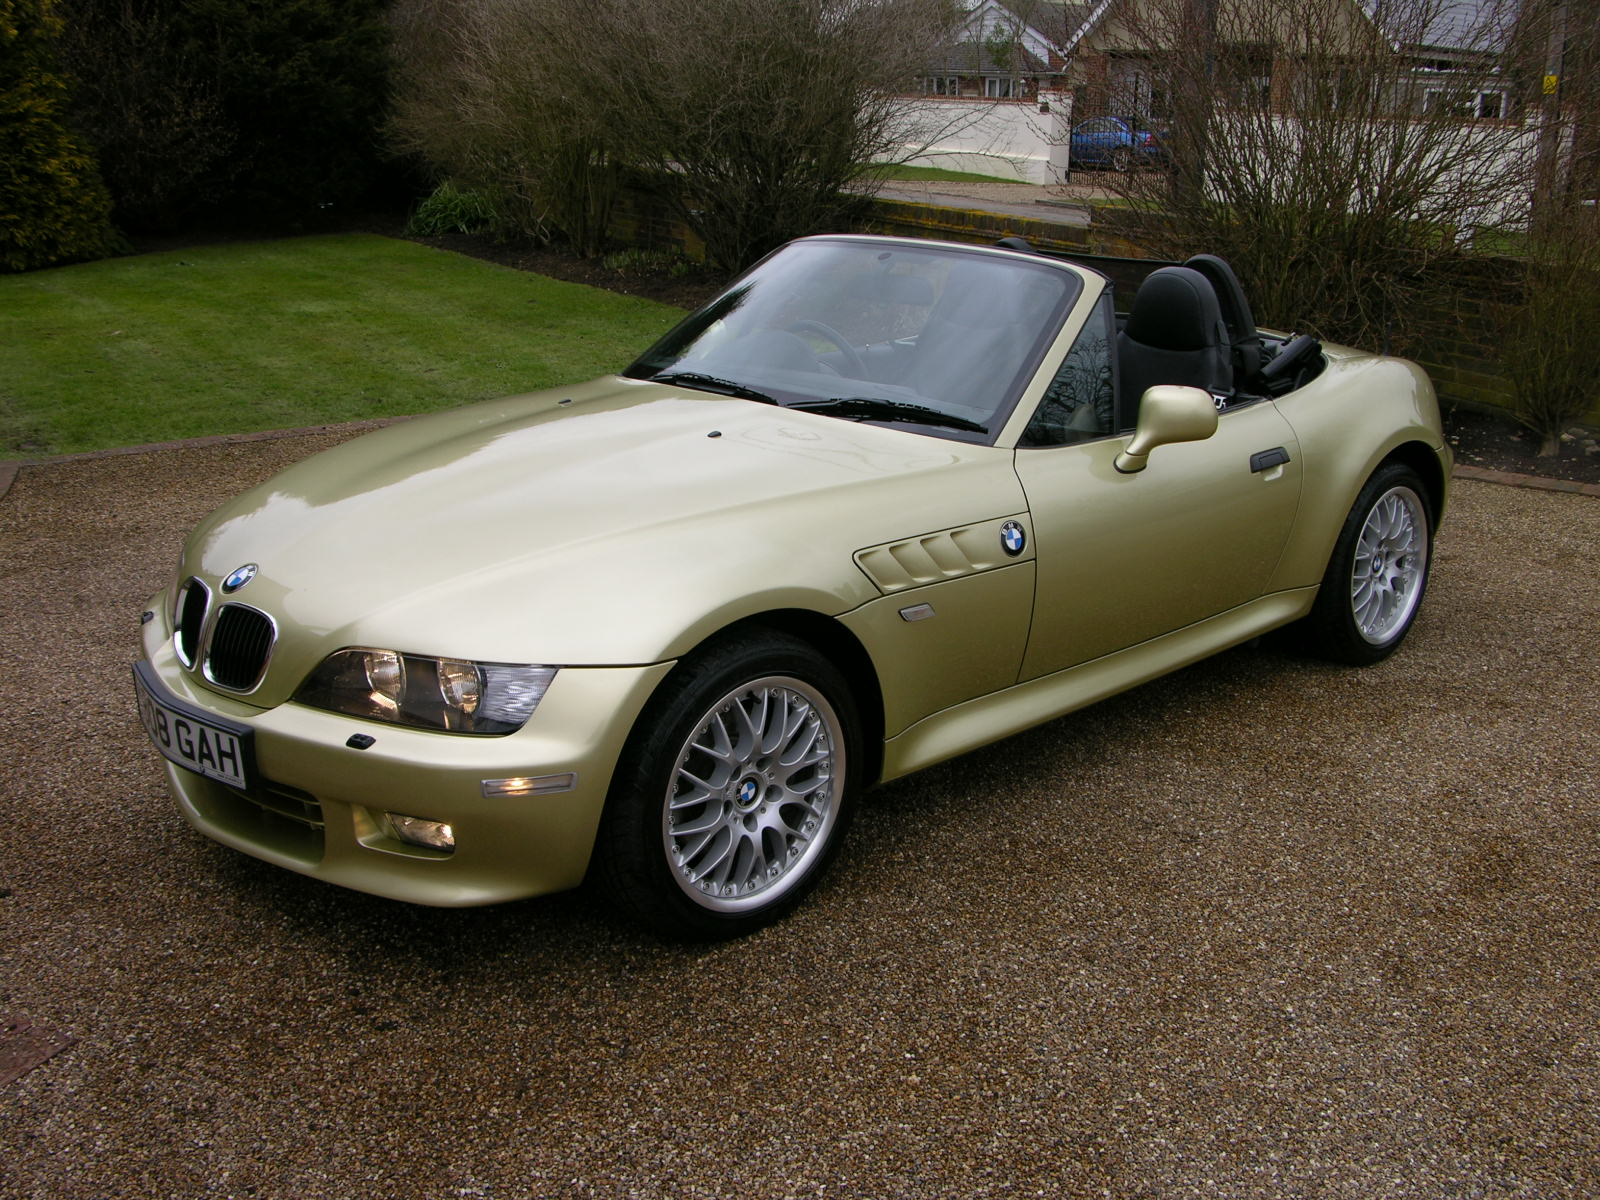 Archivo Bmw Z3 3 0i 2001 Flickr The Car Spy 9 Jpg